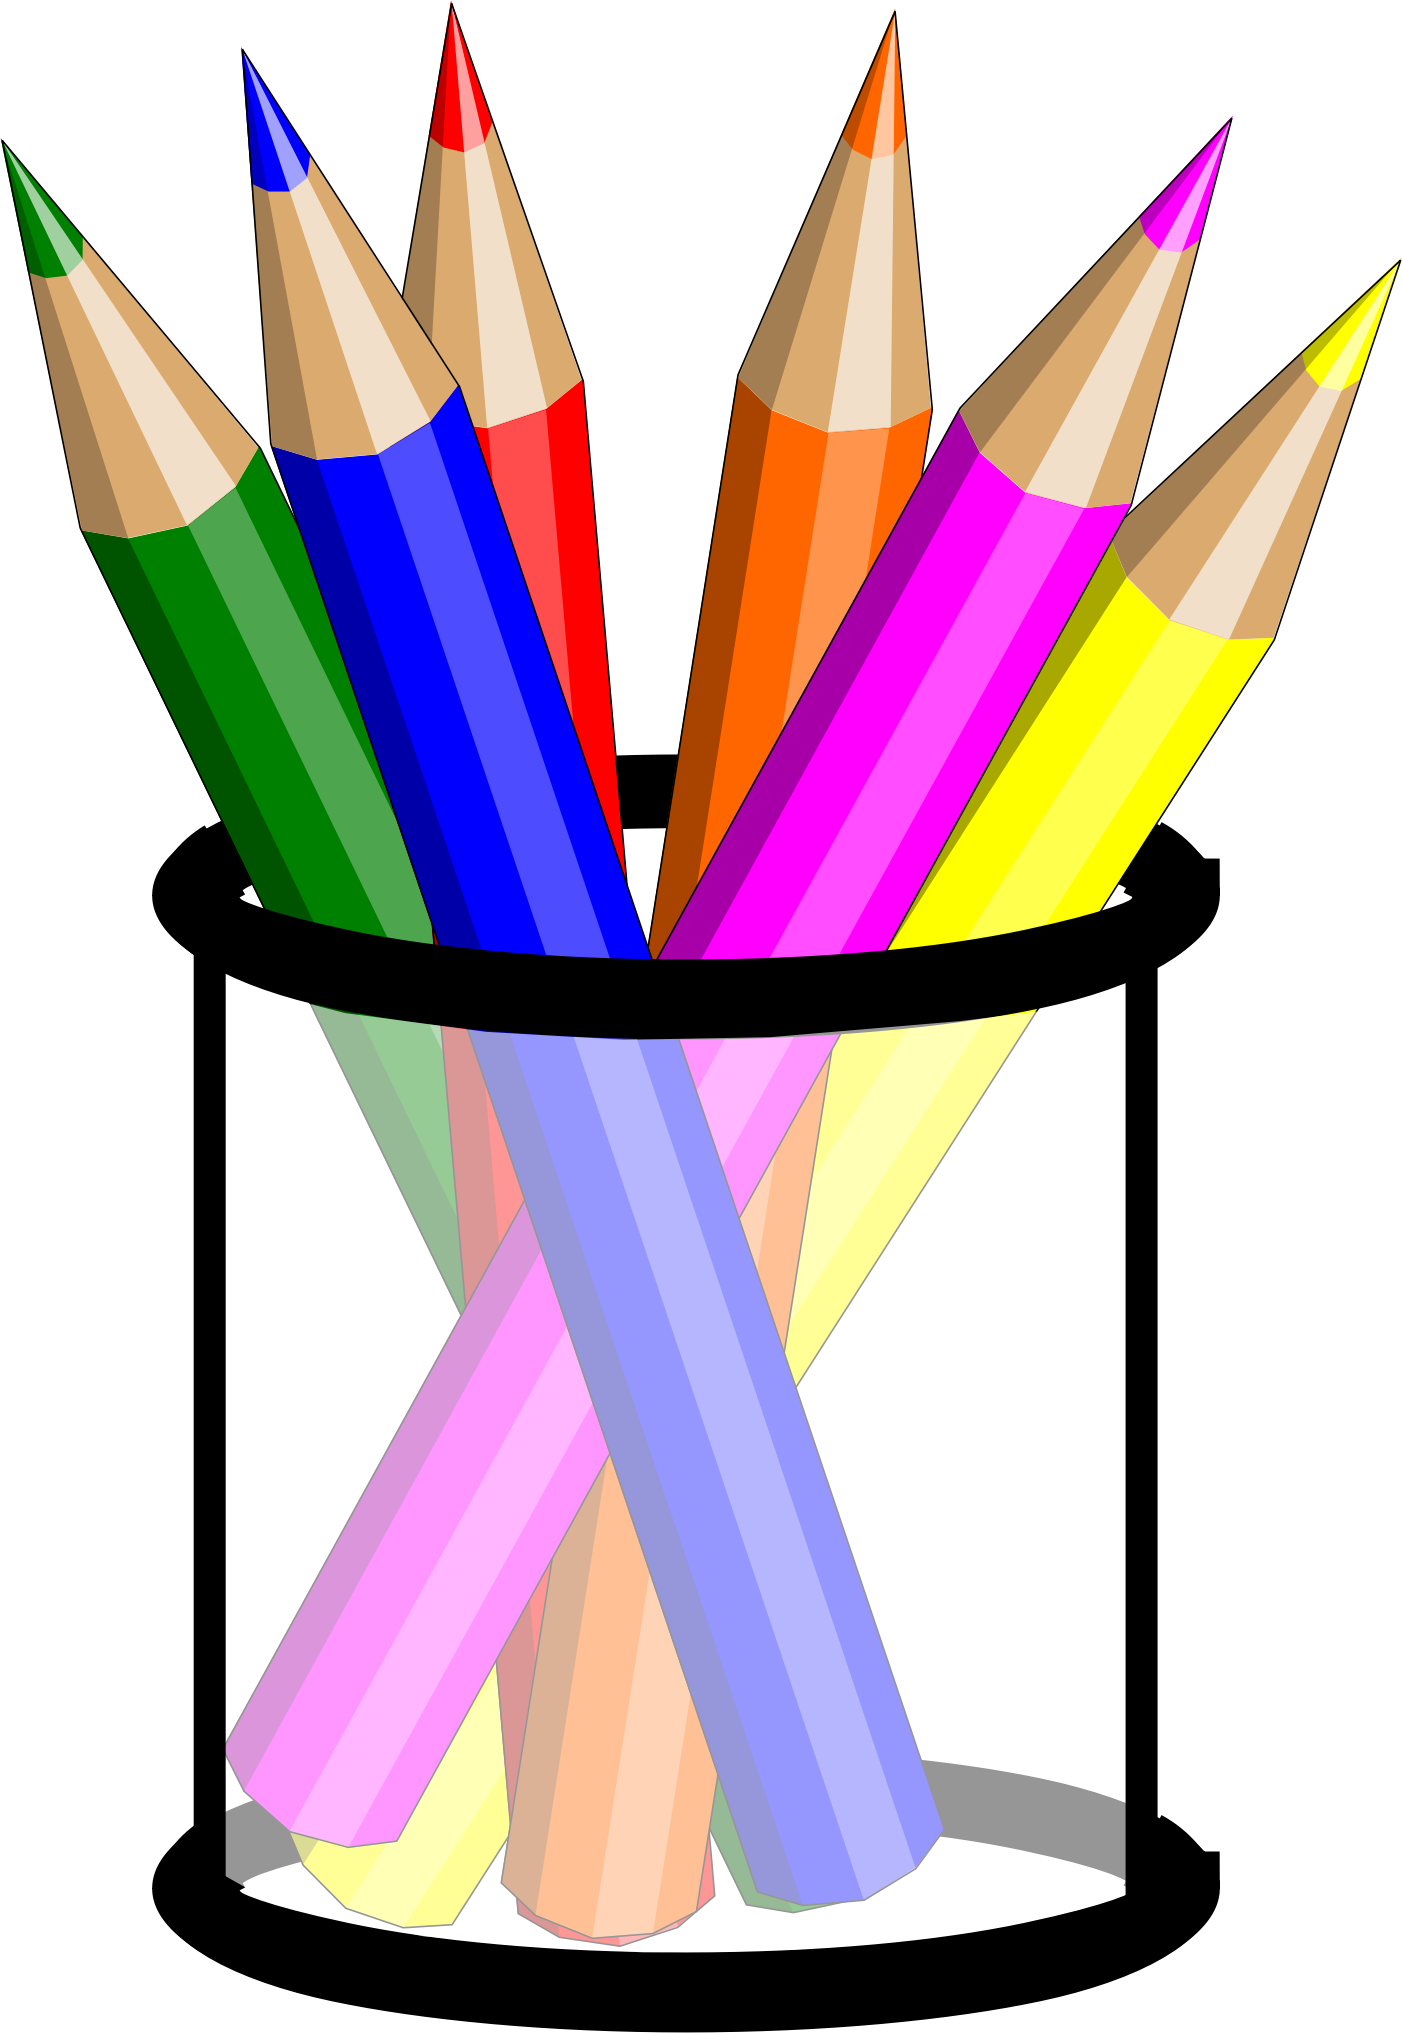 Tired clipart boring school. Pencil cup by hsayin